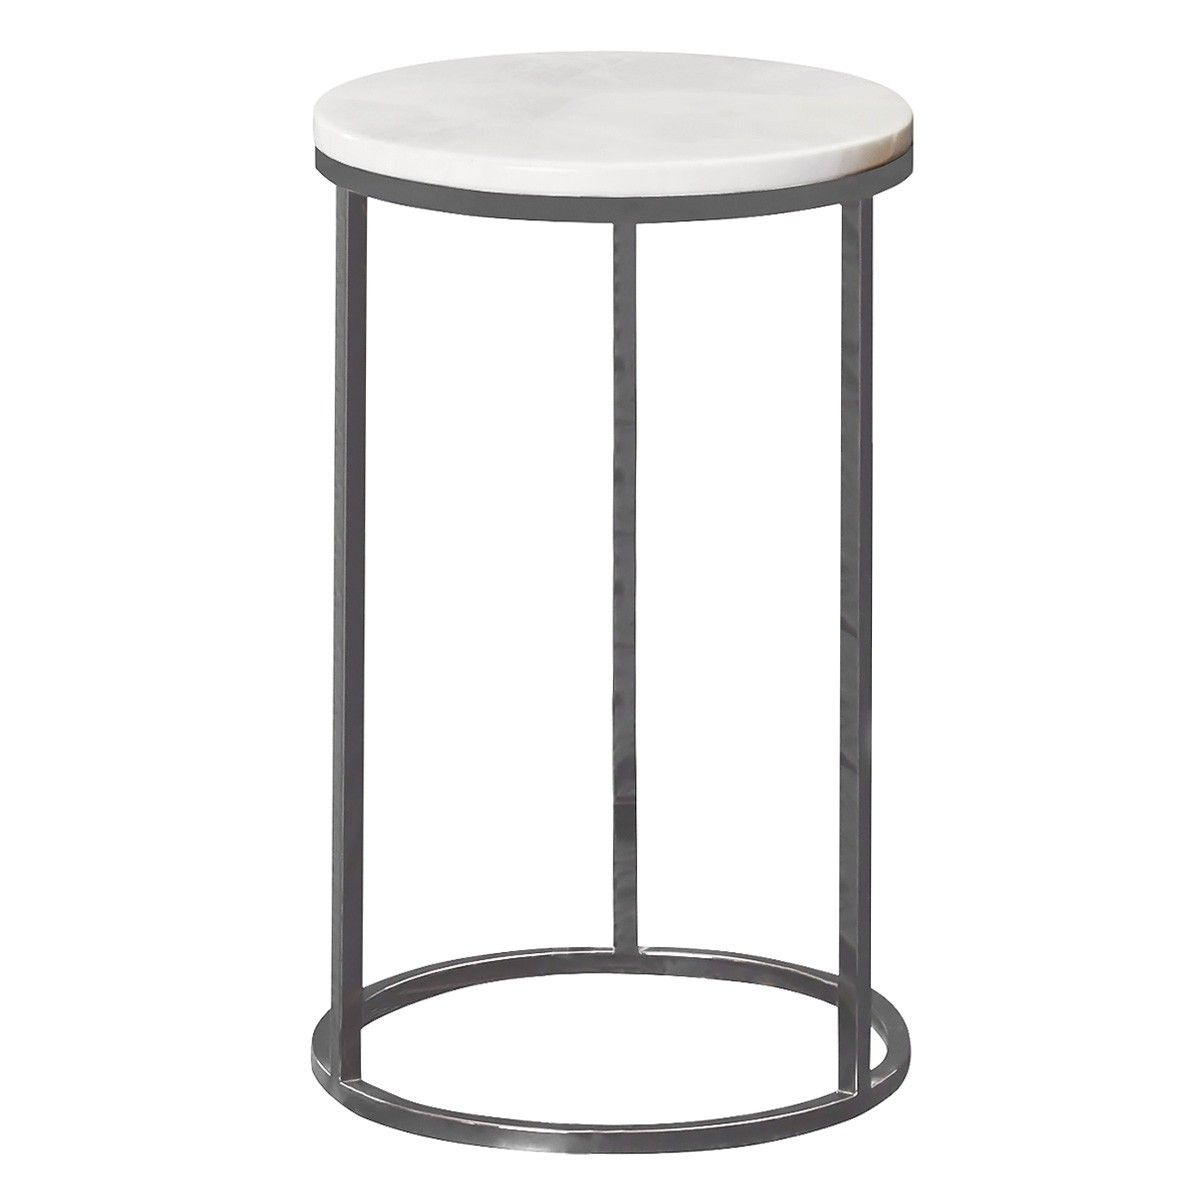 Whitney Marble Top Metal Round Side Table Small Side Table Round Metal Side Table Round Side Table